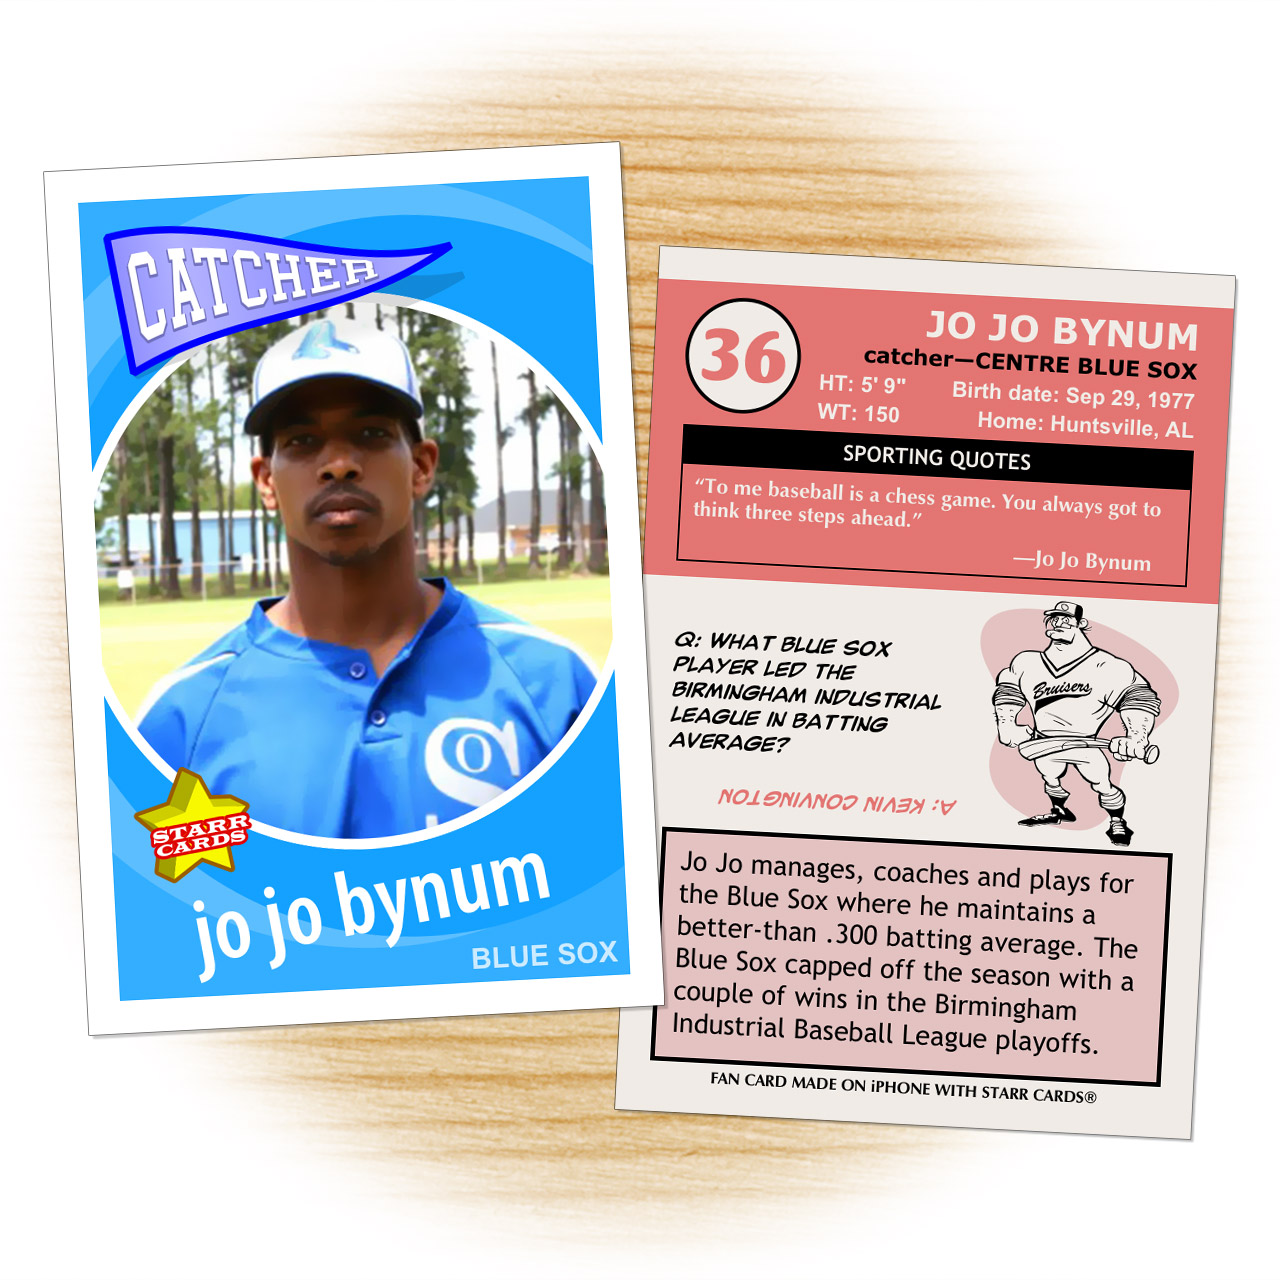 Centre Blue Sox baseball player Jo Jo Bynum